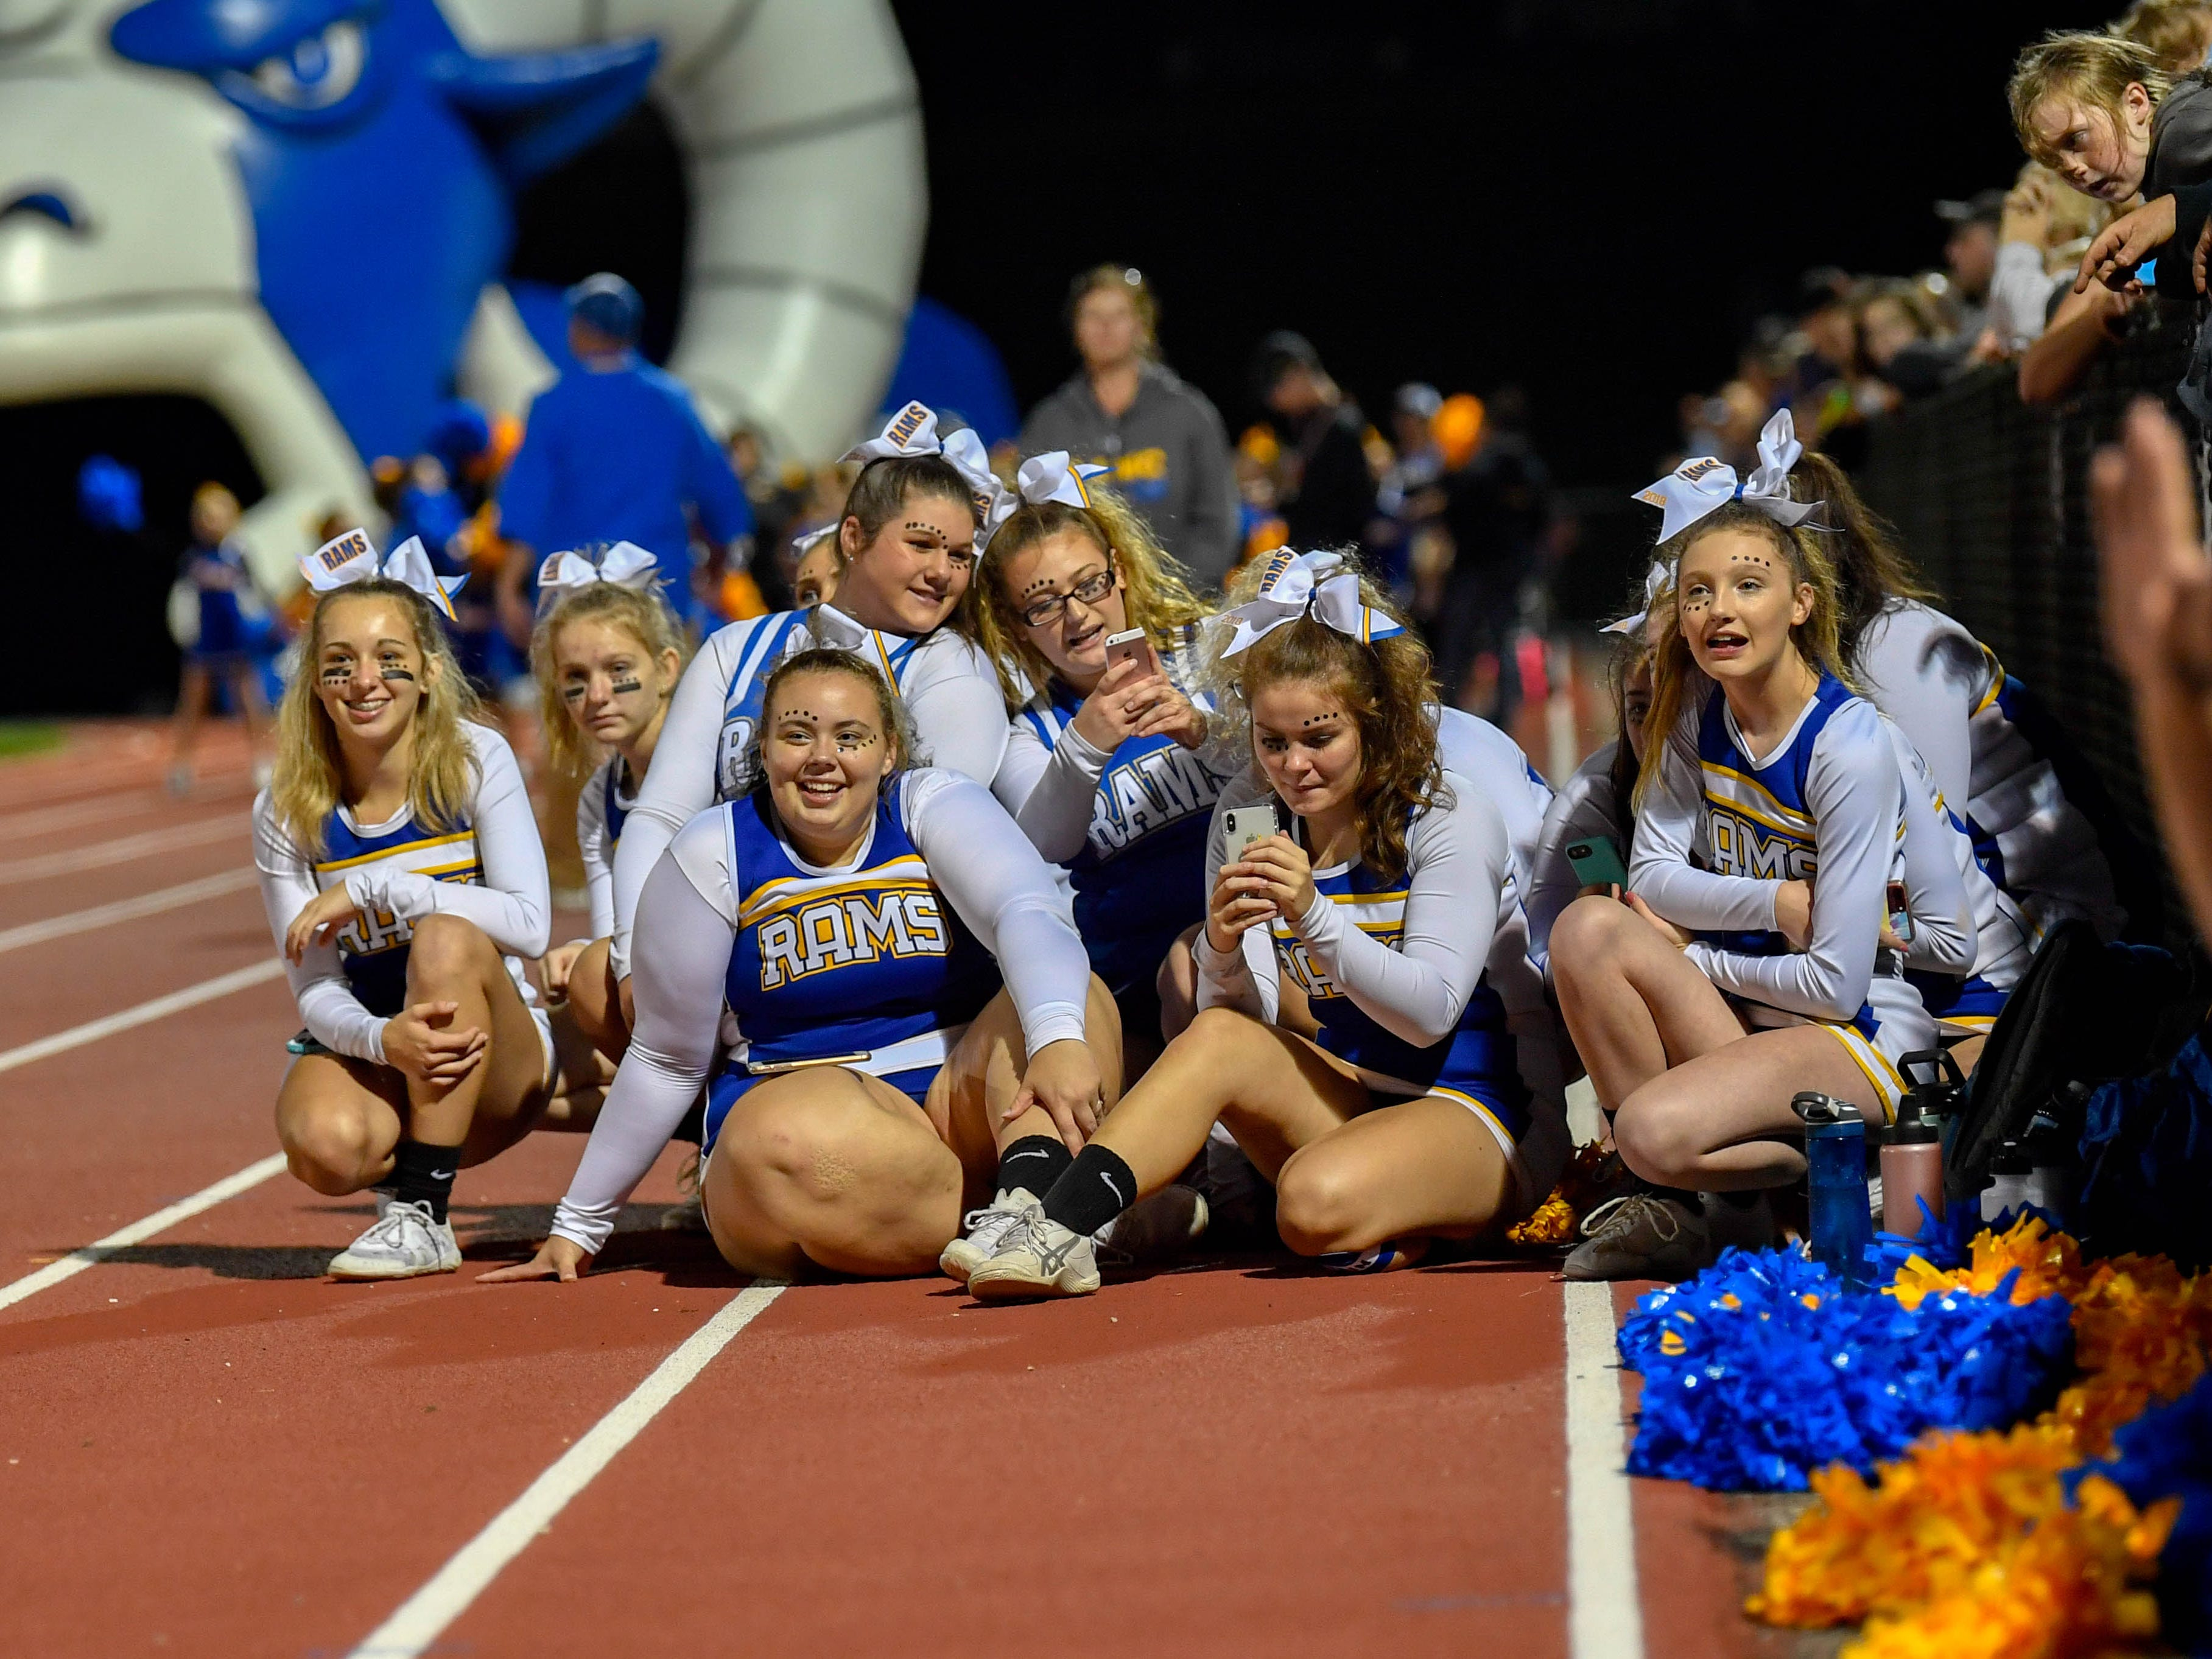 Kennard-Dale cheerleaders watch as youth cheerleaders perform their routine, Friday, September 21, 2018. The York Suburban Trojans beat the Kennard-Dale Rams 31-25.